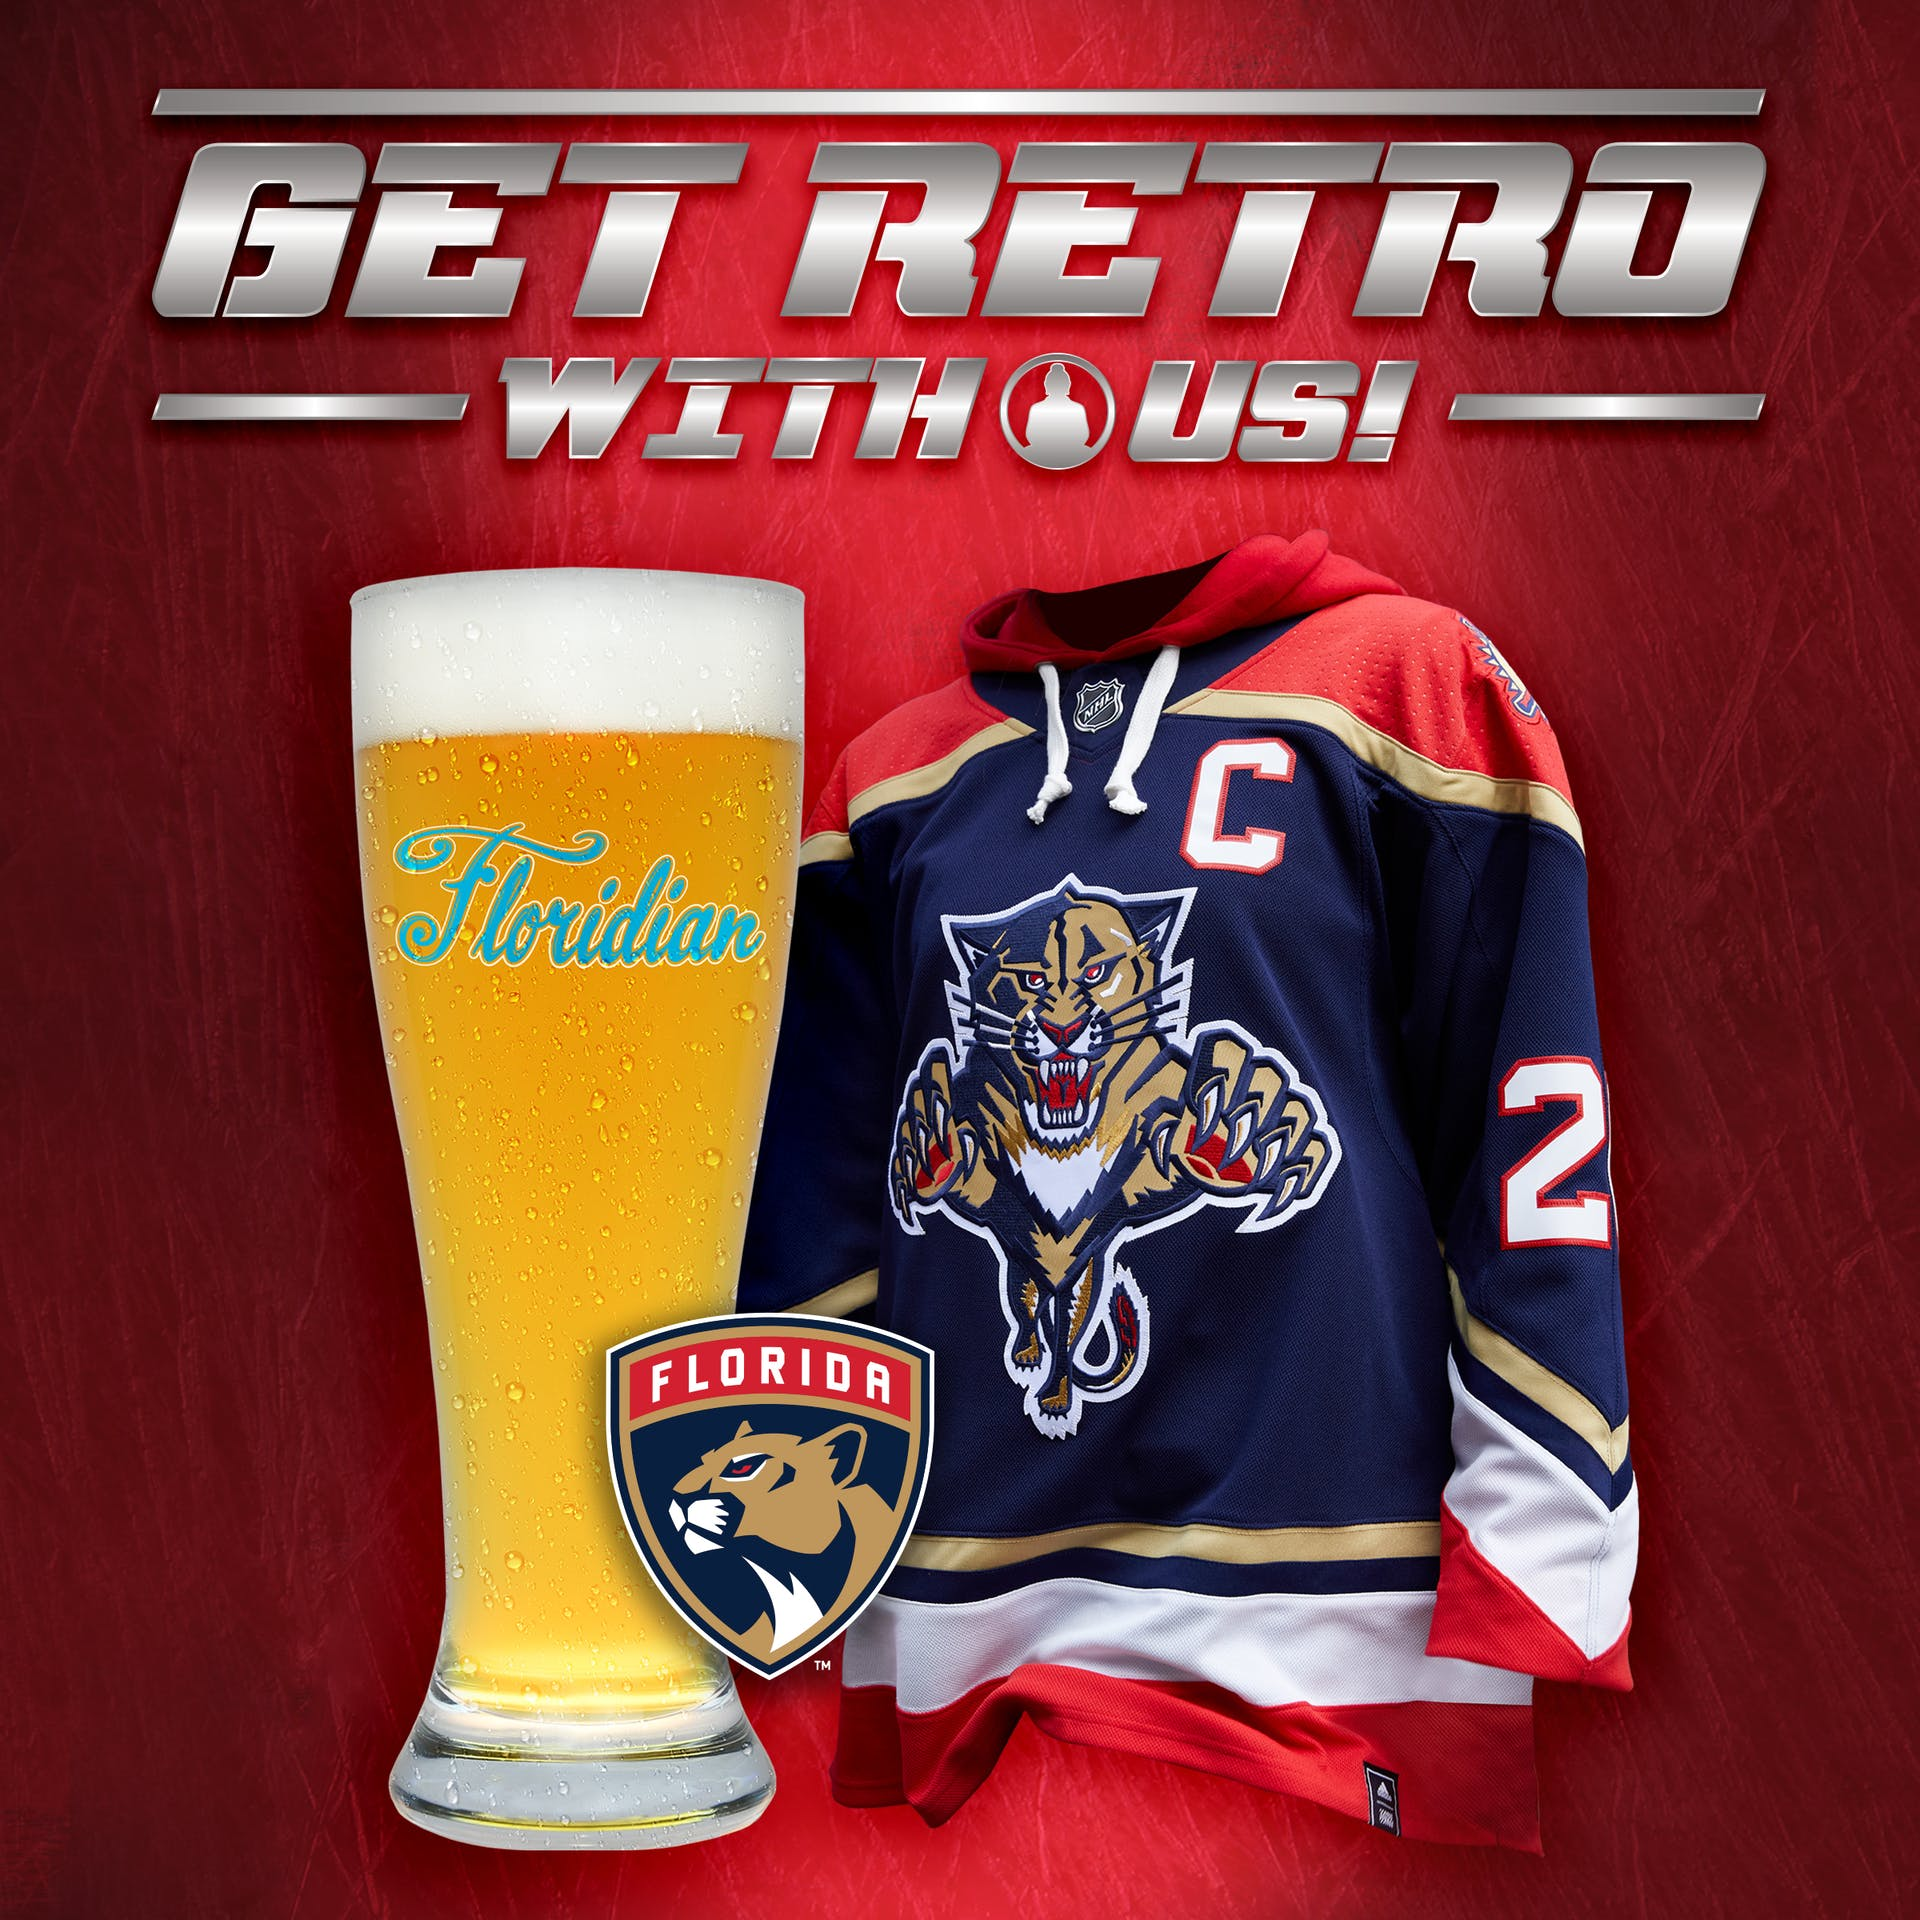 Florida Panthers Retro Reverse Jersey and Retro Floridian